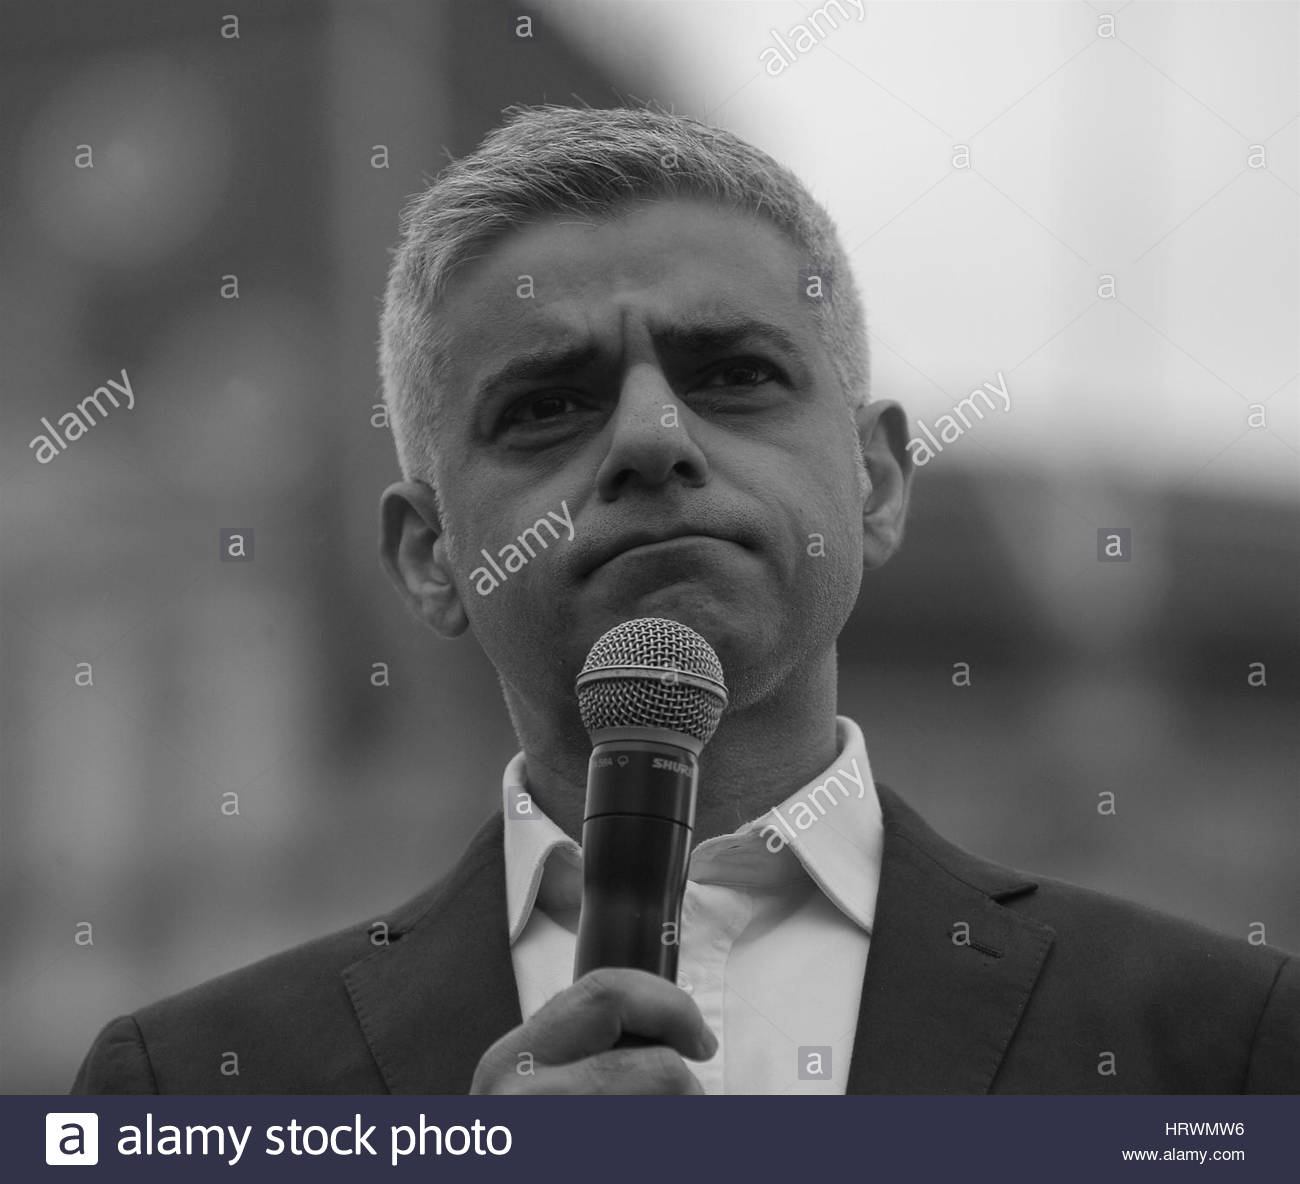 London, UK, 26, 02, 2017: The Mayor of London Sadiq Khan ( Image digitally altered to monochrome ) attends  a free - Stock Image